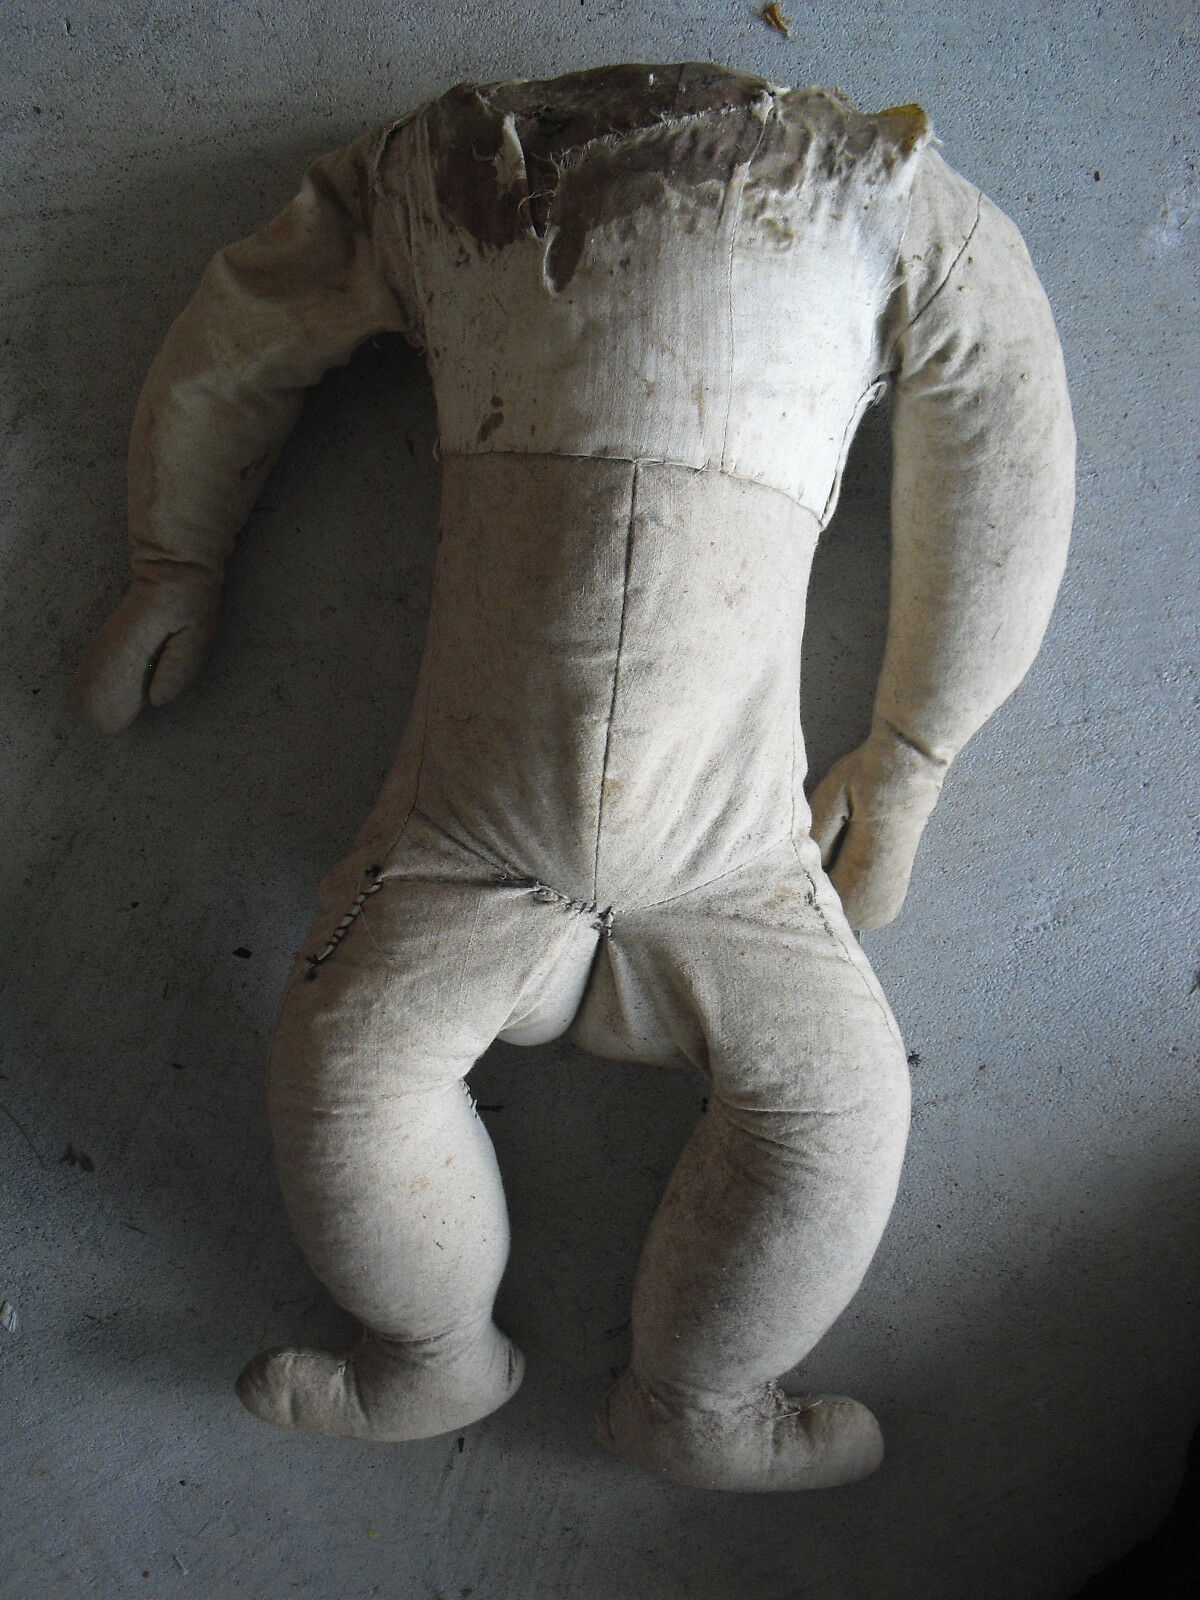 BIG Vintage 1920s Stuffed Cloth Doll Body Arms and Legs 18 1/2  Tall